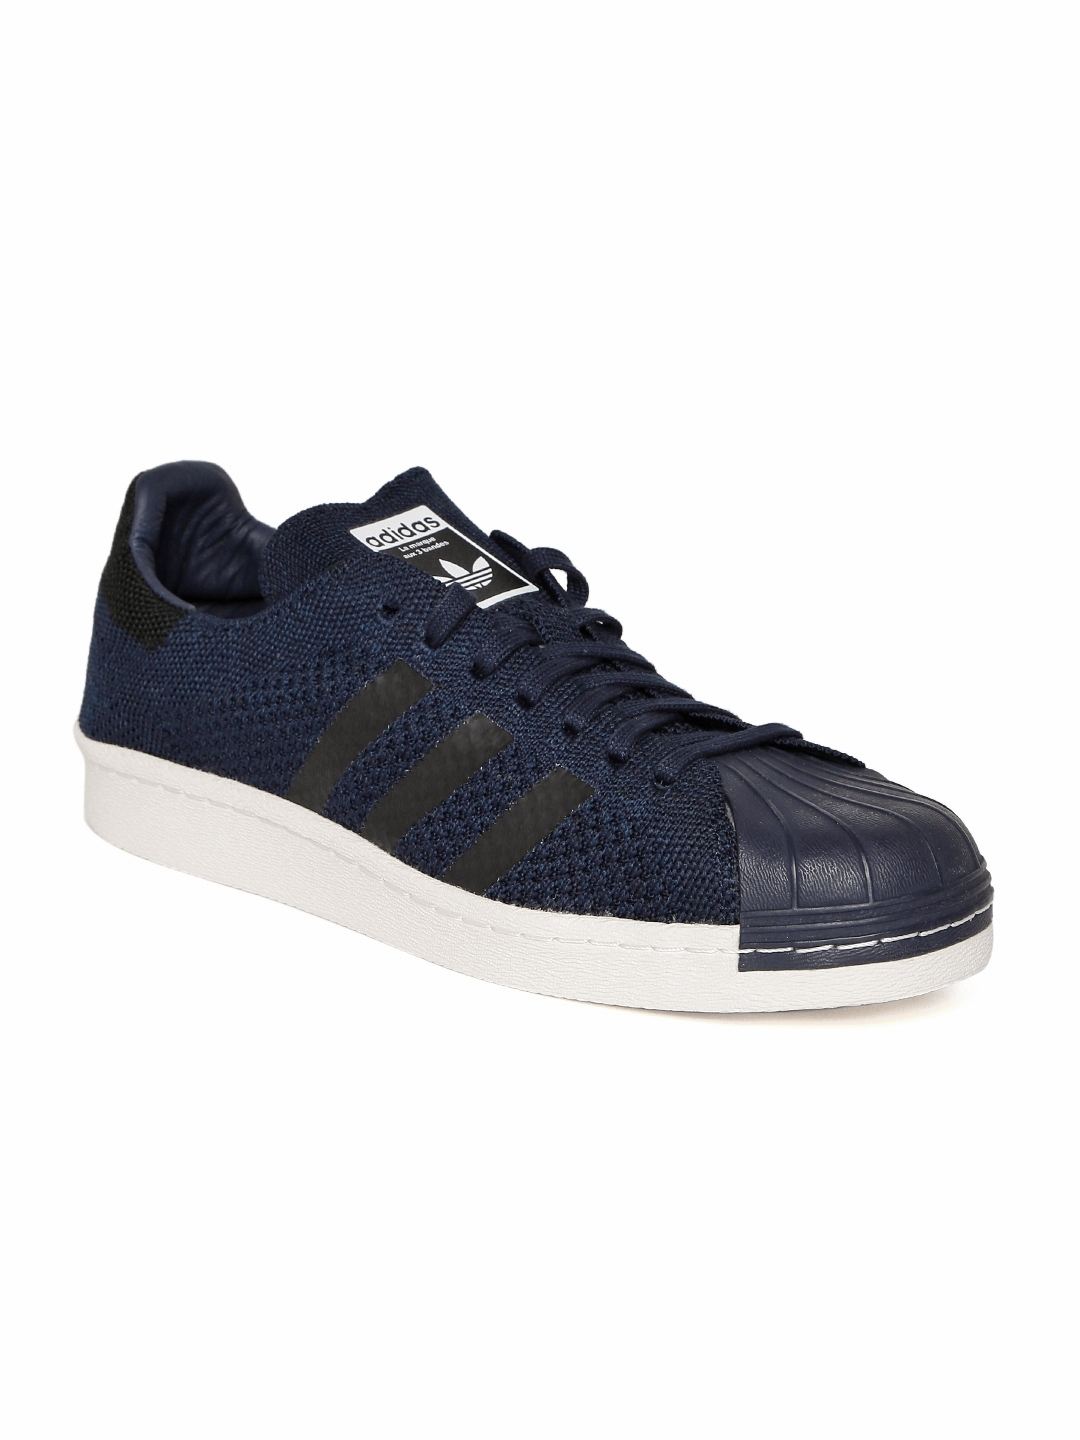 c43dca458 Buy ADIDAS Originals Men Navy SUPERSTAR 80S Primeknit Sneakers ...